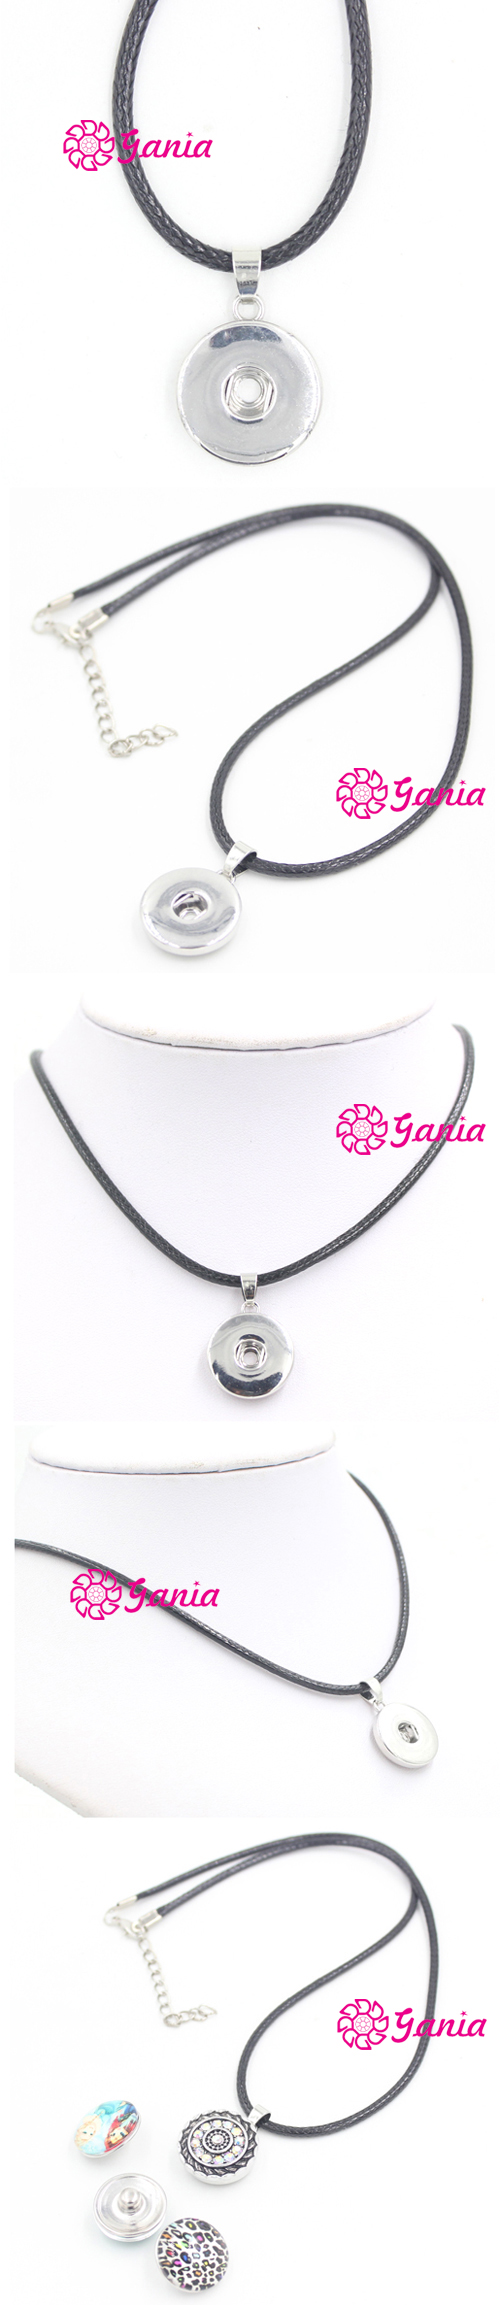 New Arrival Interchangeable Snap Jewelry Necklace Black PU Leather Rope with 18mm Snap Pendant Necklace